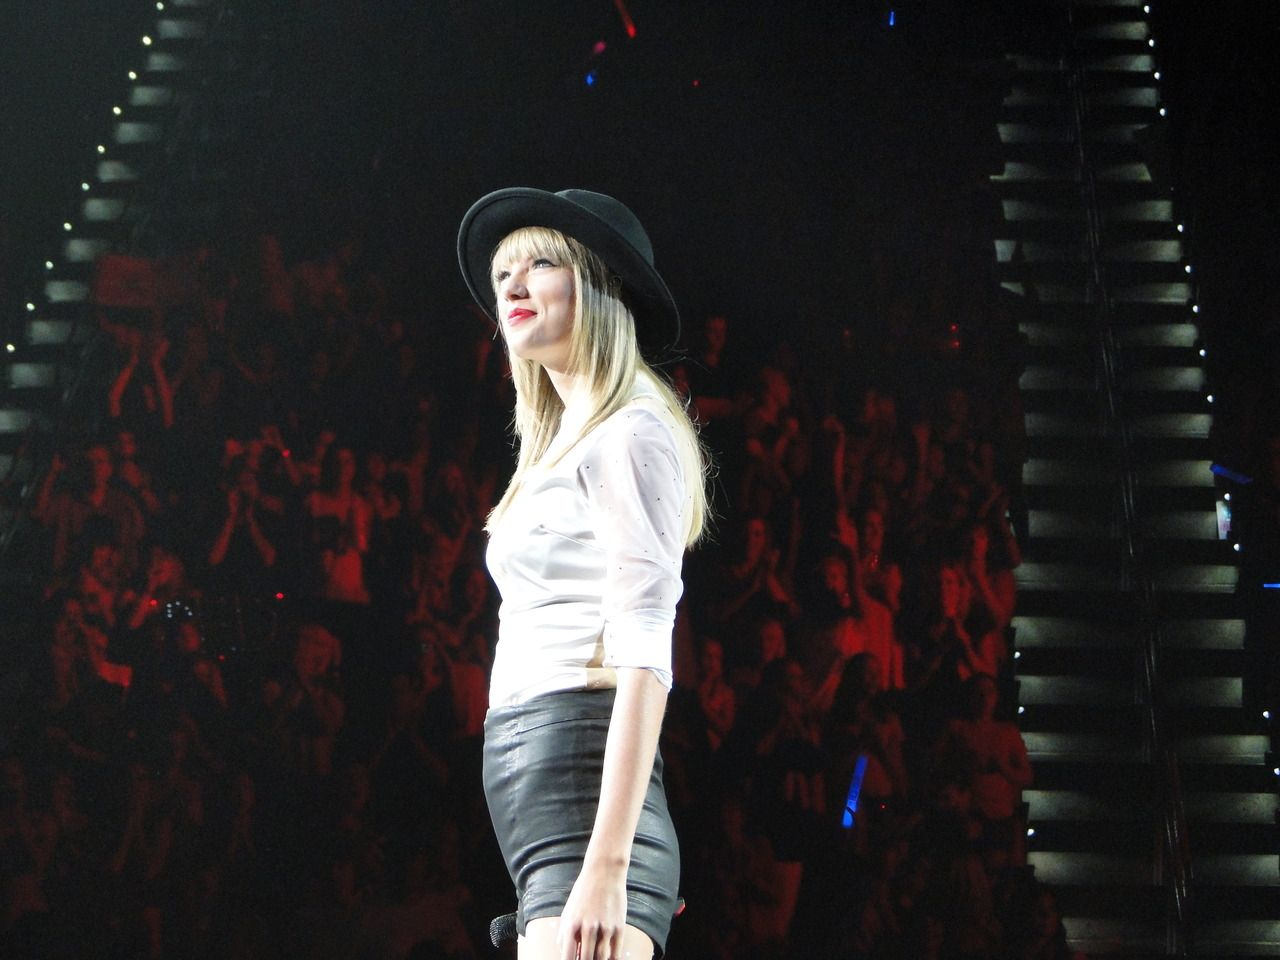 State of Grace - RED Tour, Raleigh, NC 9/13/13